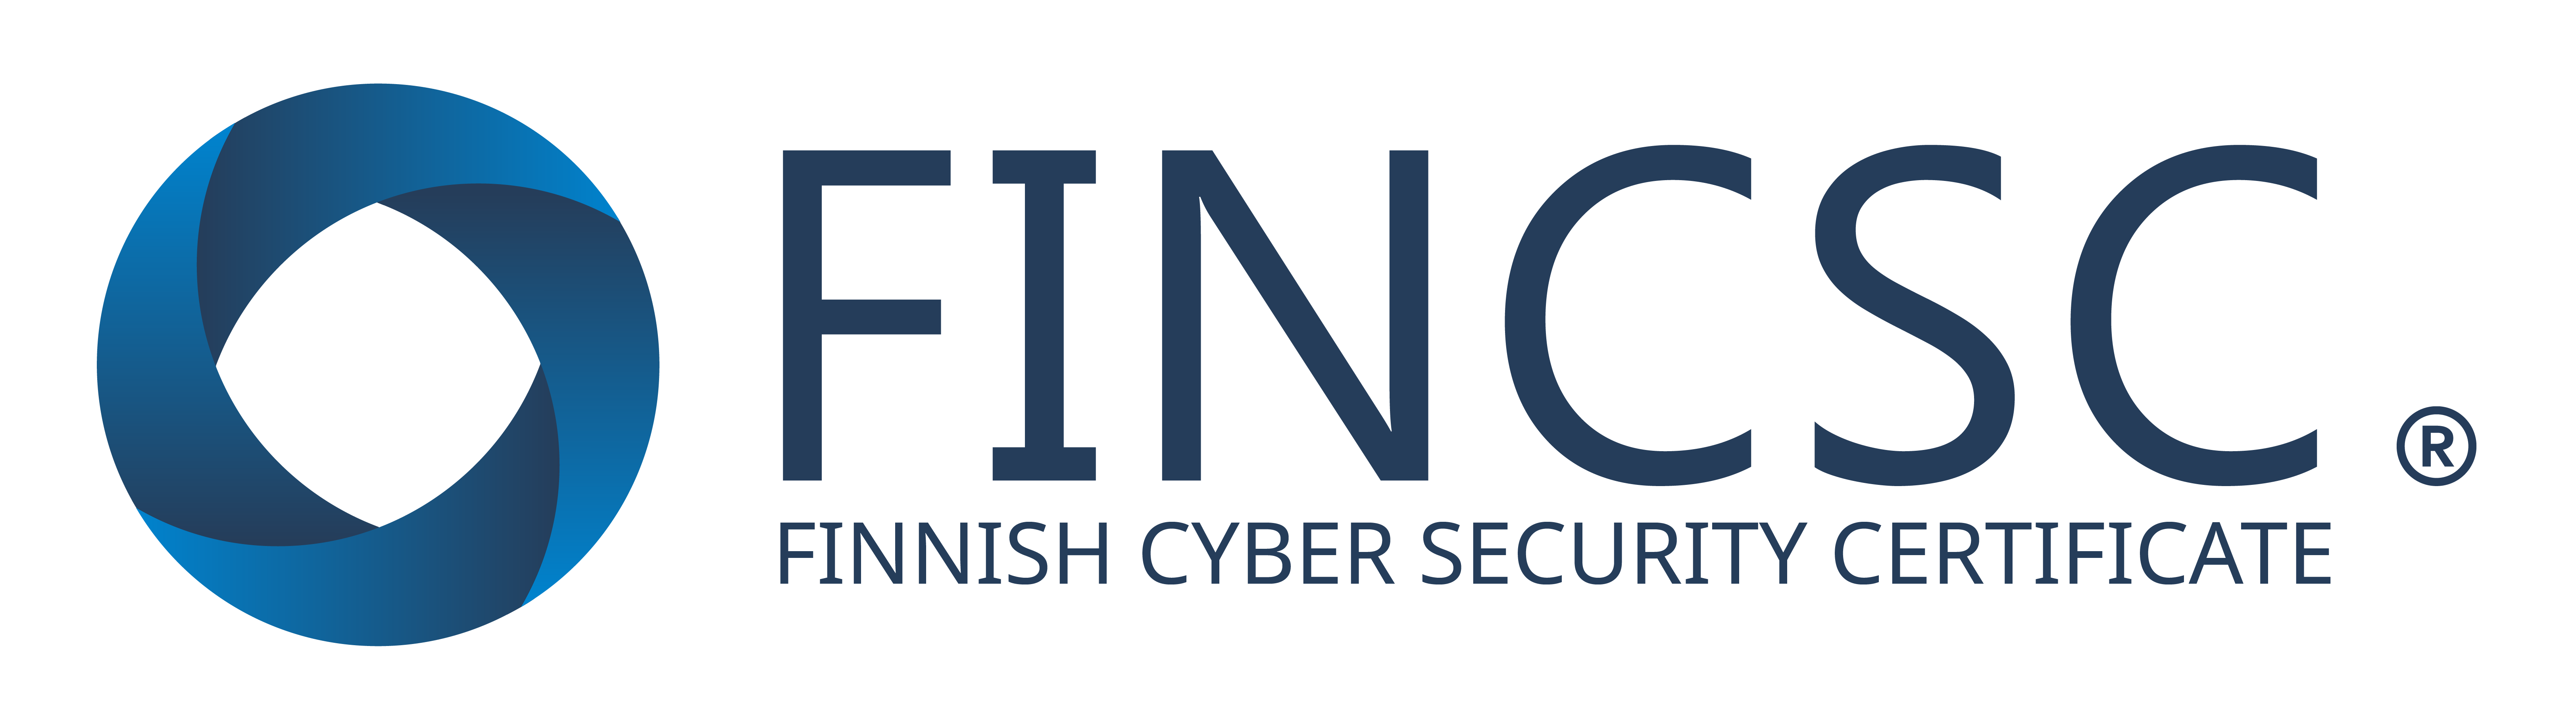 FINCSC - Finnish Cyber Security Certificate